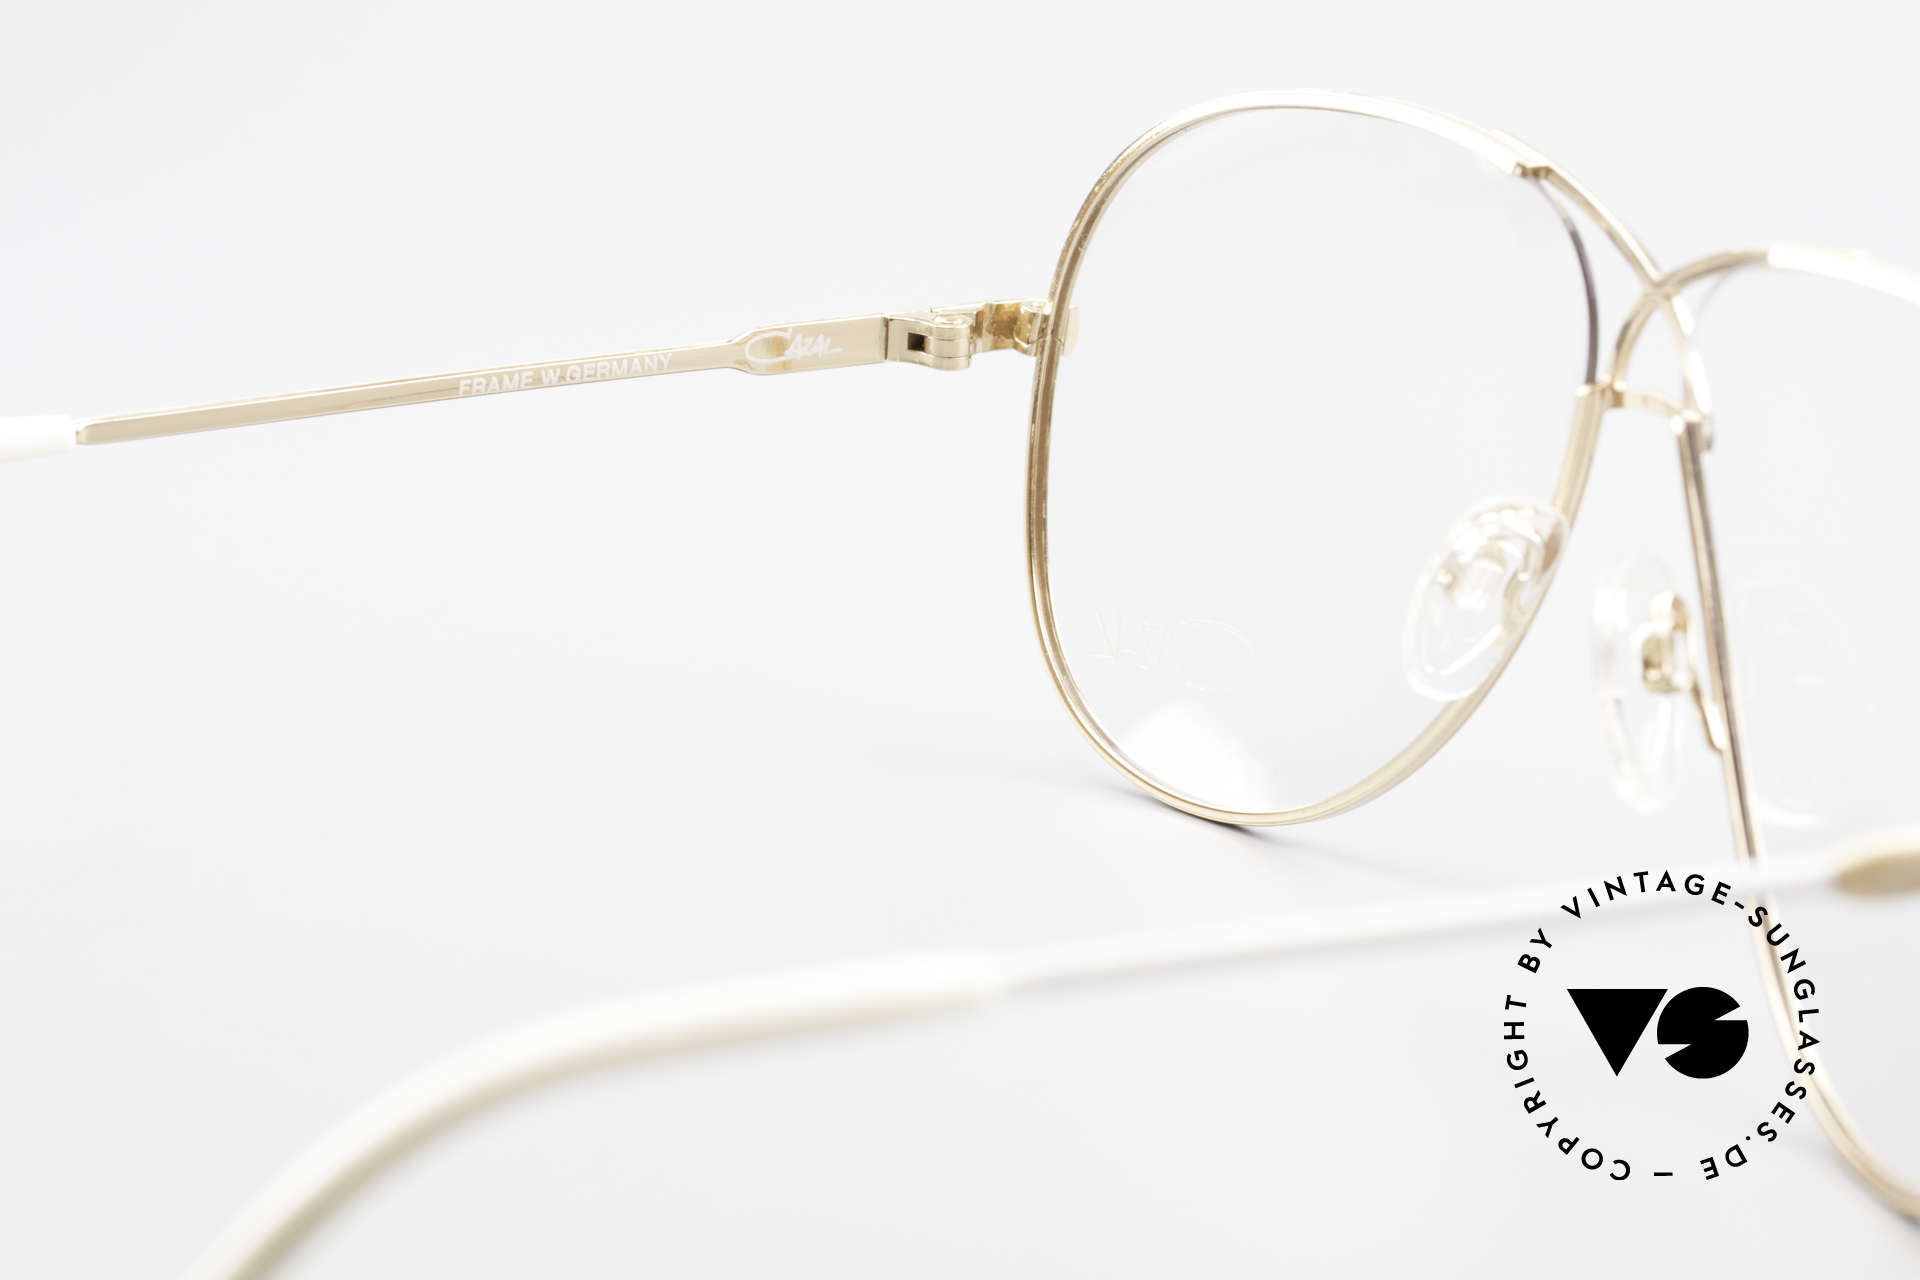 Cazal 728 Aviator Style Vintage Glasses, NO RETRO eyeglasses, but a 30 years old original, Made for Men and Women